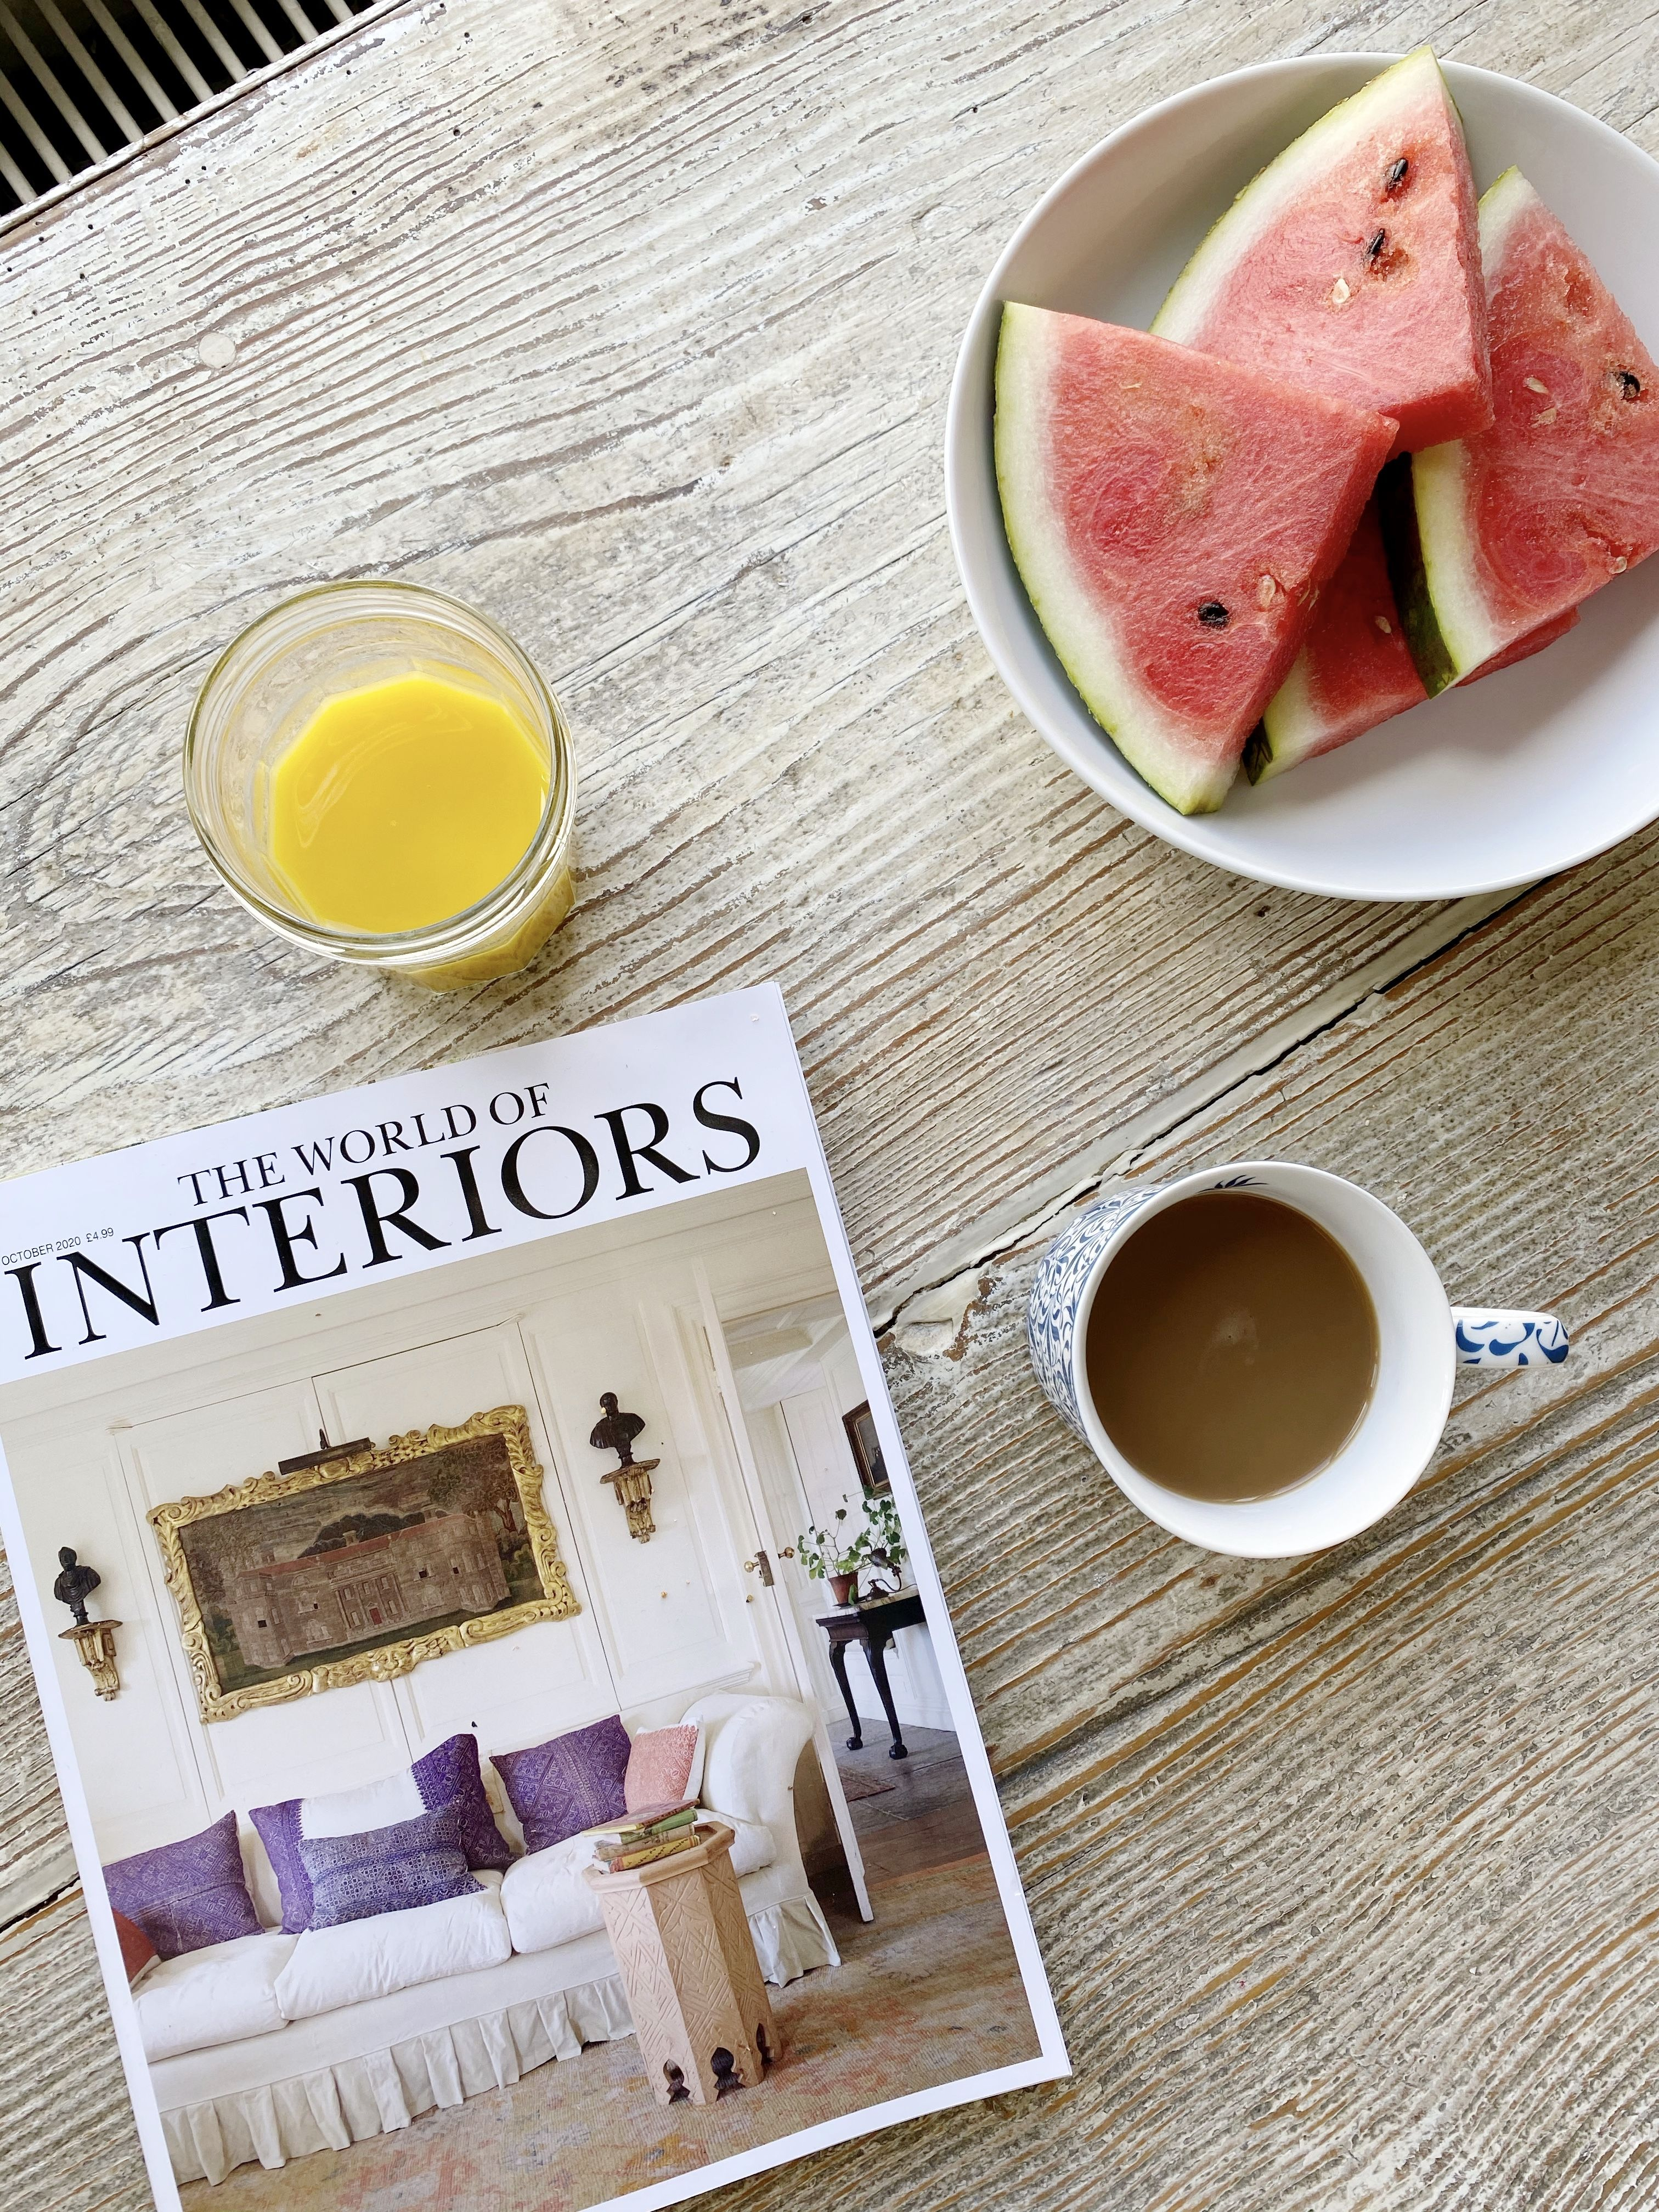 The most important and my favourite meal of the day...Breakfast! 🍉 🍊 . . . . . #interiors #interiordesigns #londoninteriordesigner #instahome #instafood #instagood #theworldofinteriors